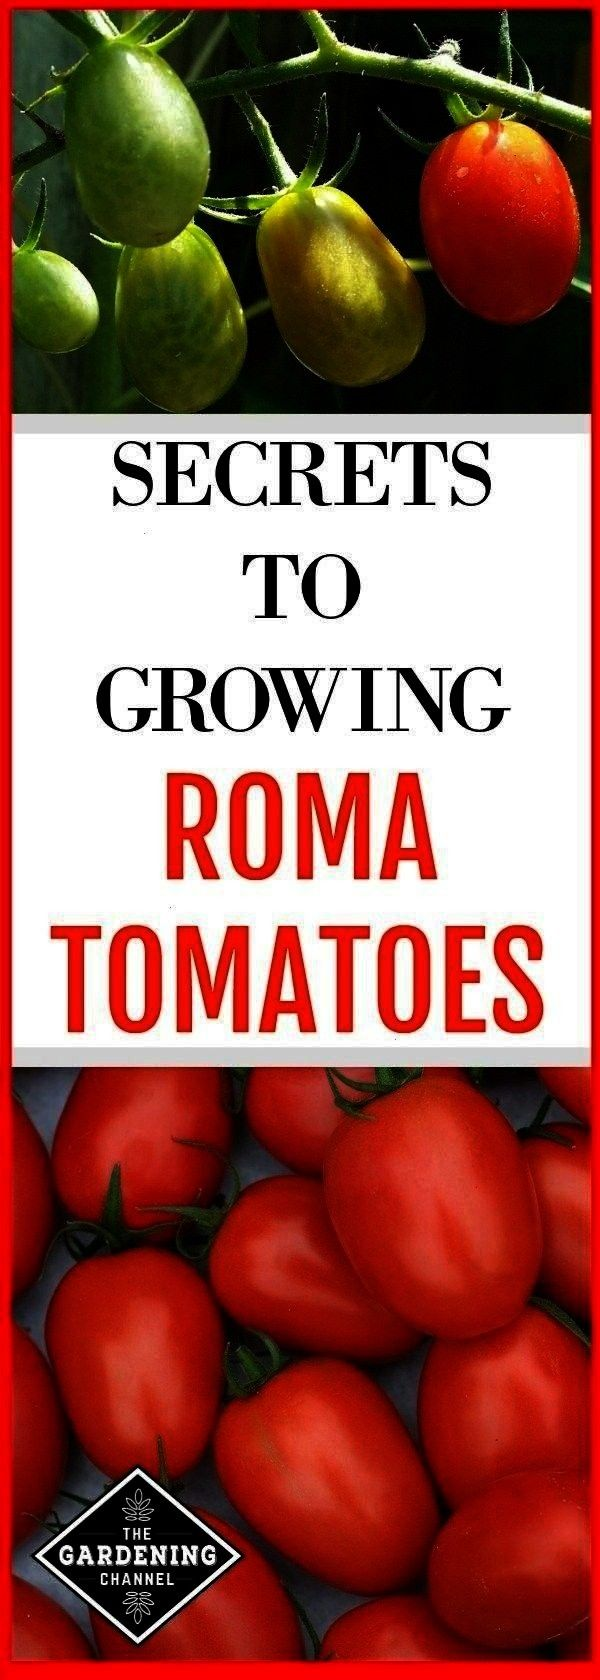 the garden and roma tomato harvest with text overlay secrets to growing roma tomatoesroma tomatoes growing in the garden and roma tomato harvest with text overlay secrets...